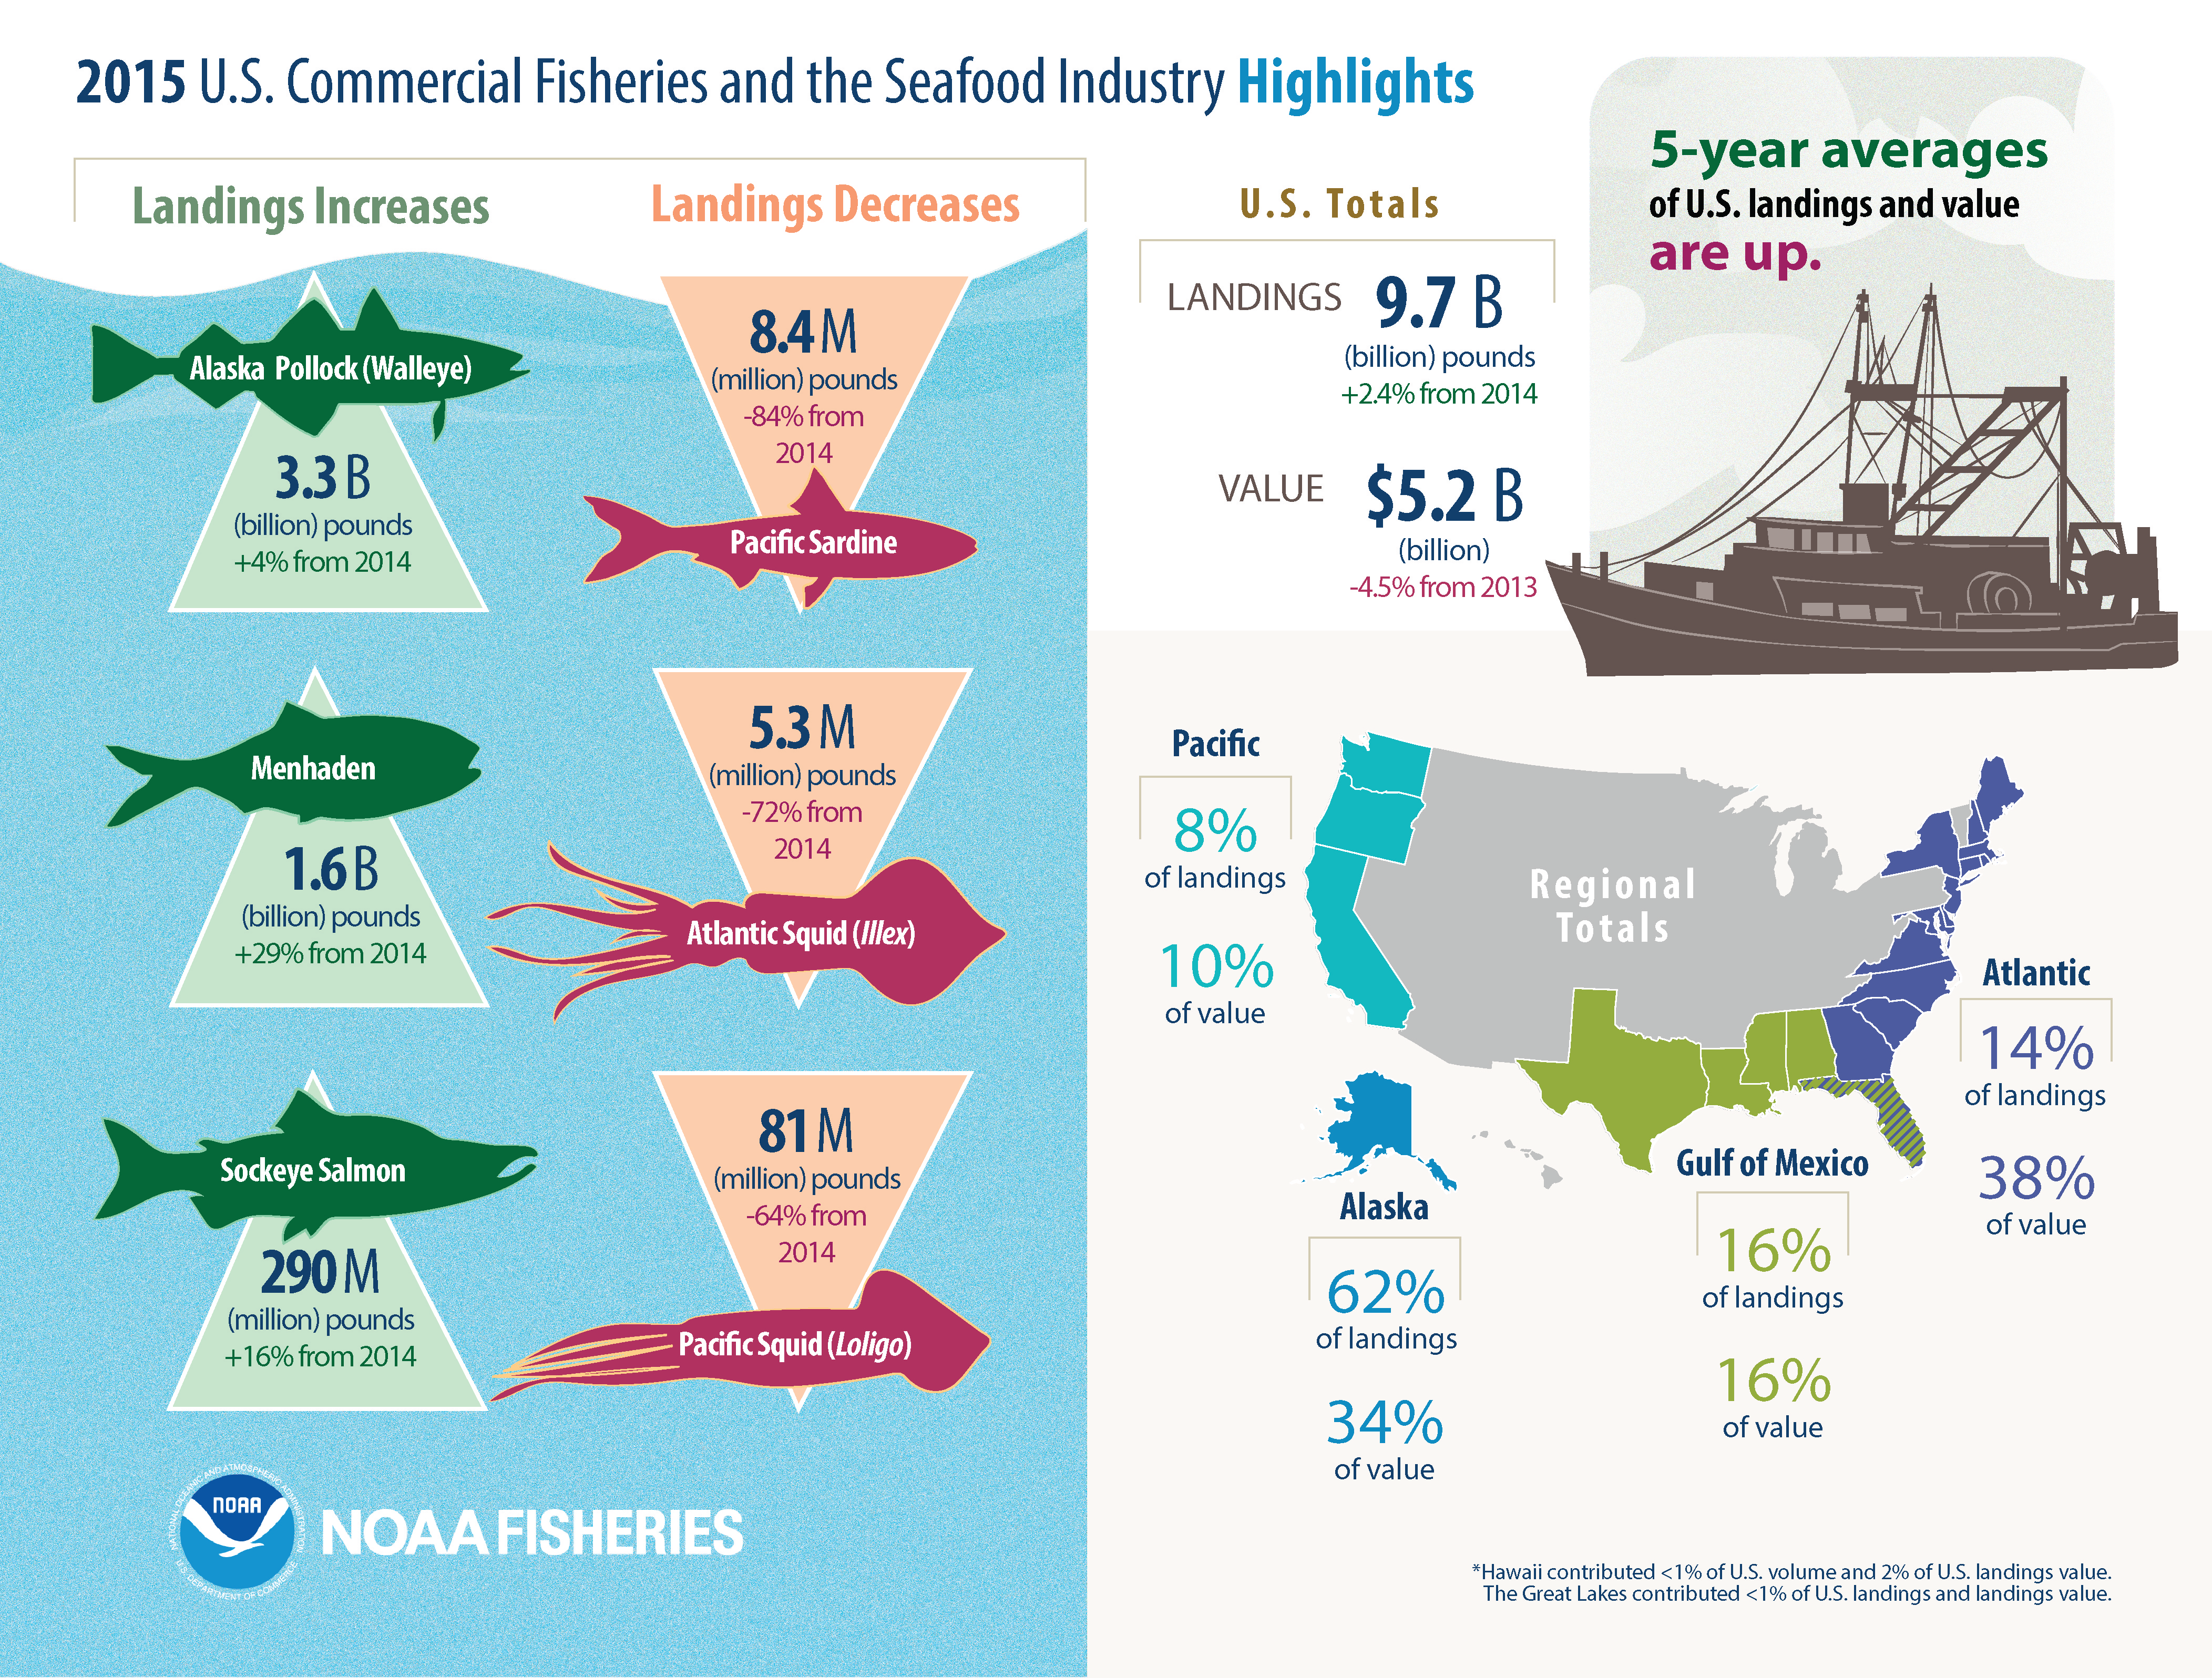 Commercial Fisheries Landings and Values